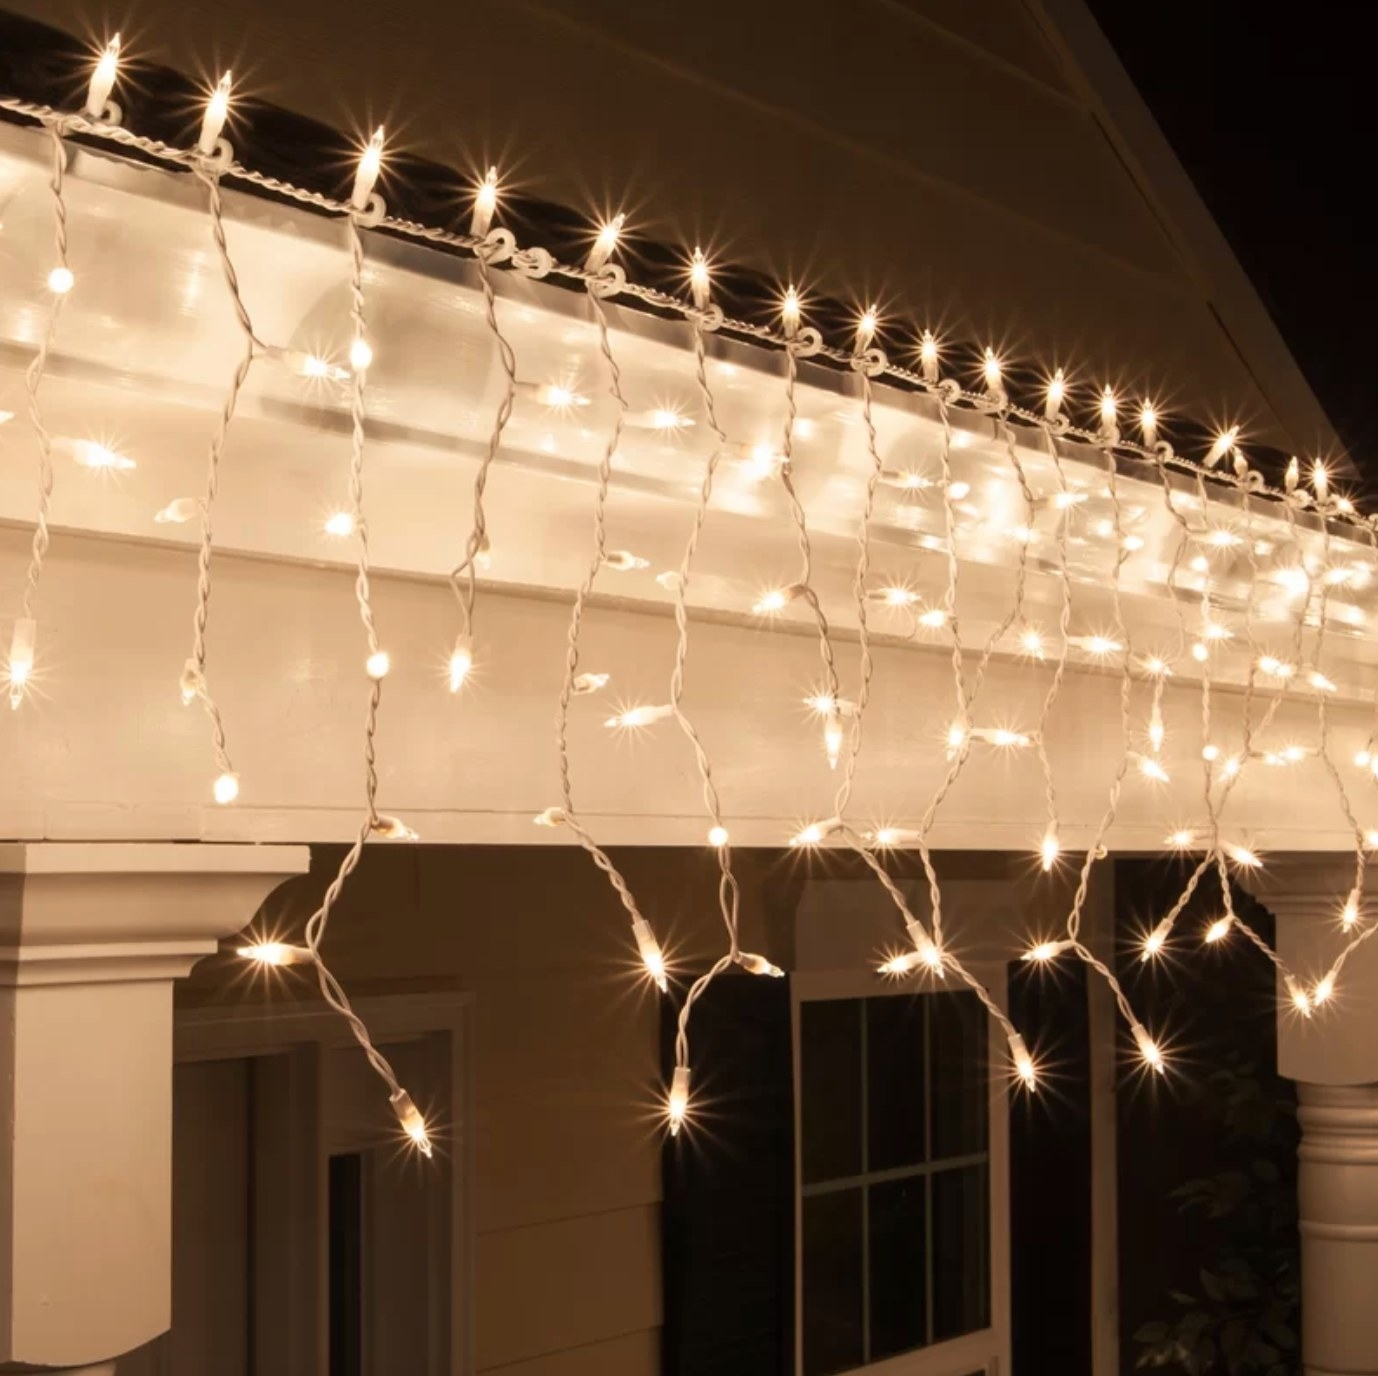 The set of 100 icicle lights in clear creating a relaxed ambiance